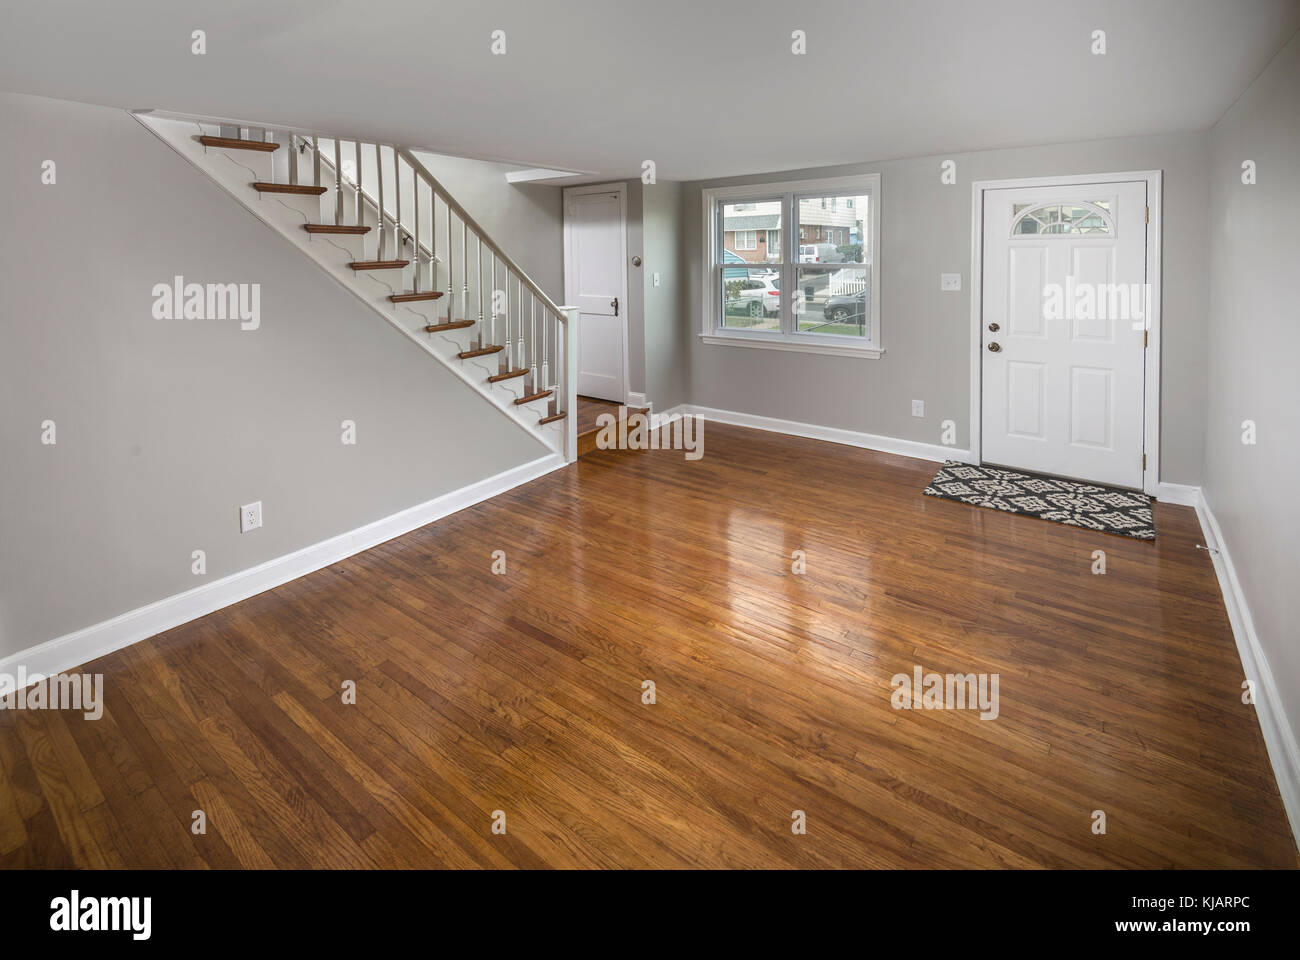 Empty Vacant Living Room In Residential Home - Stock Image